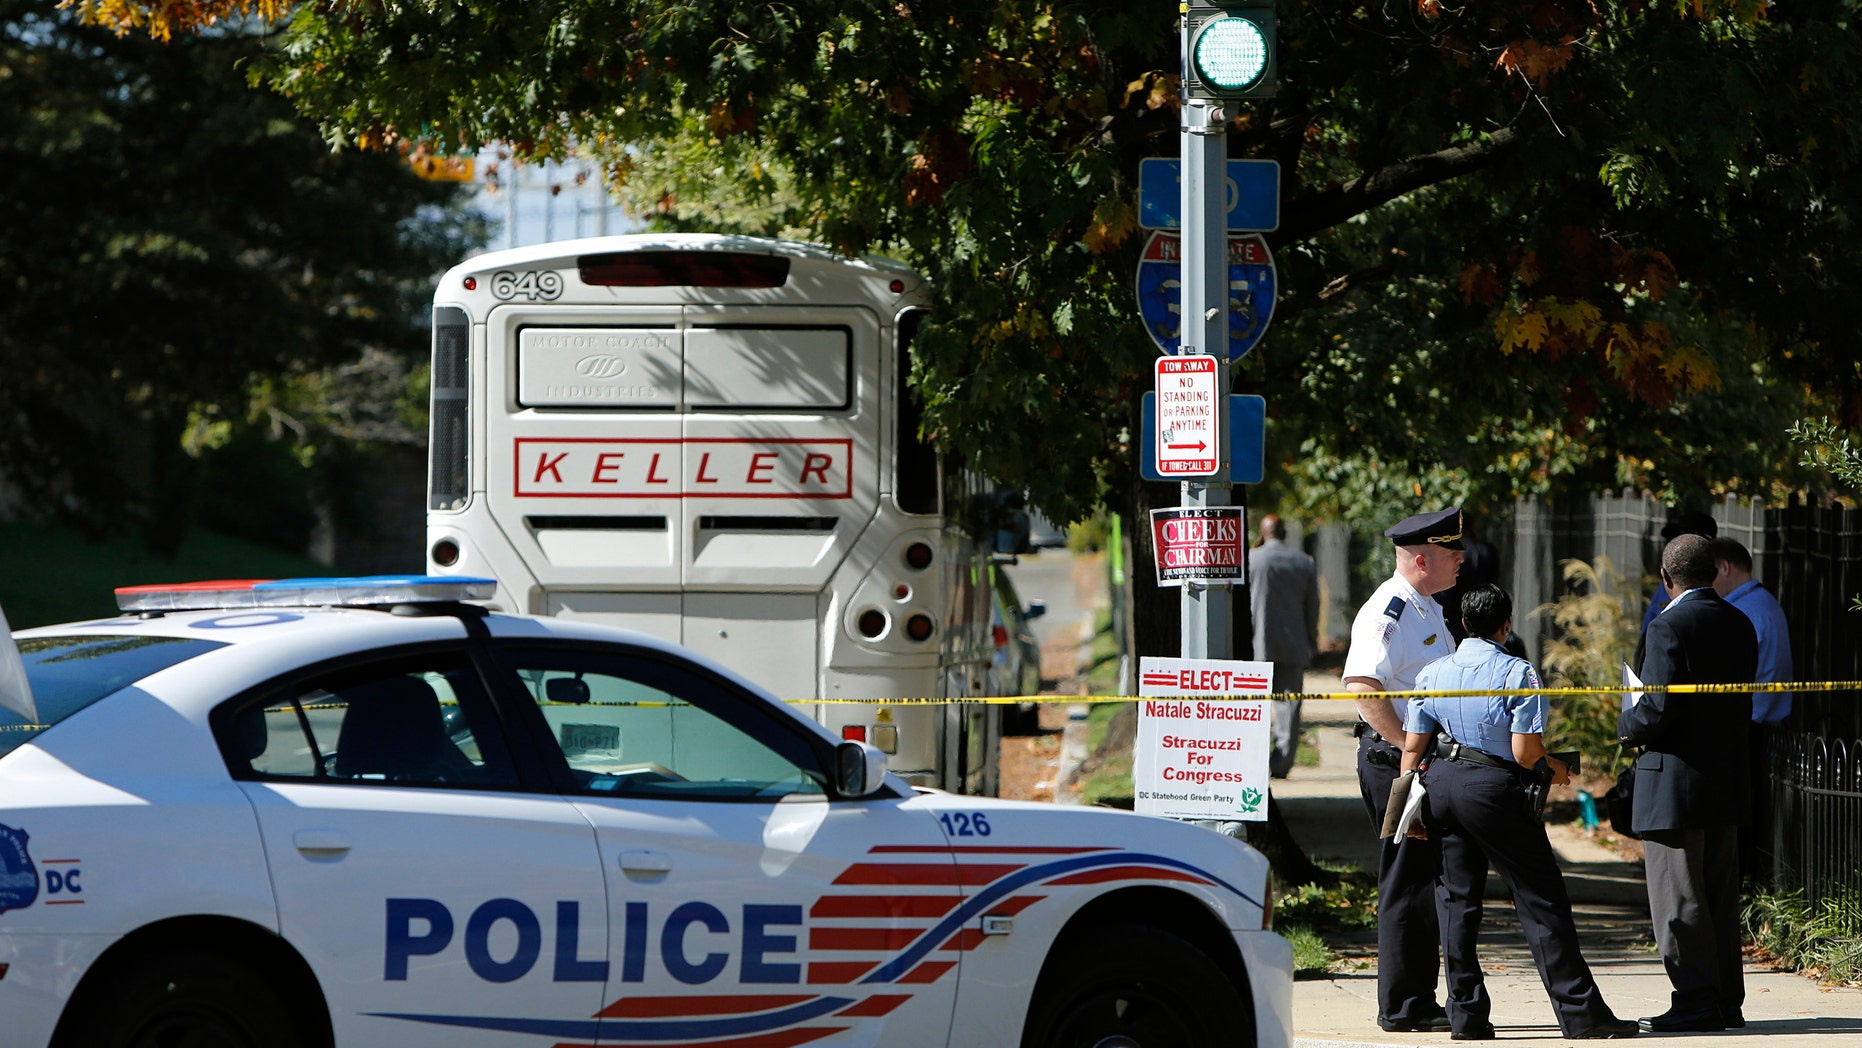 Oct. 17, 2014: A cordoned-off police area is seen near a charter bus after an Ebola scare in Washington.